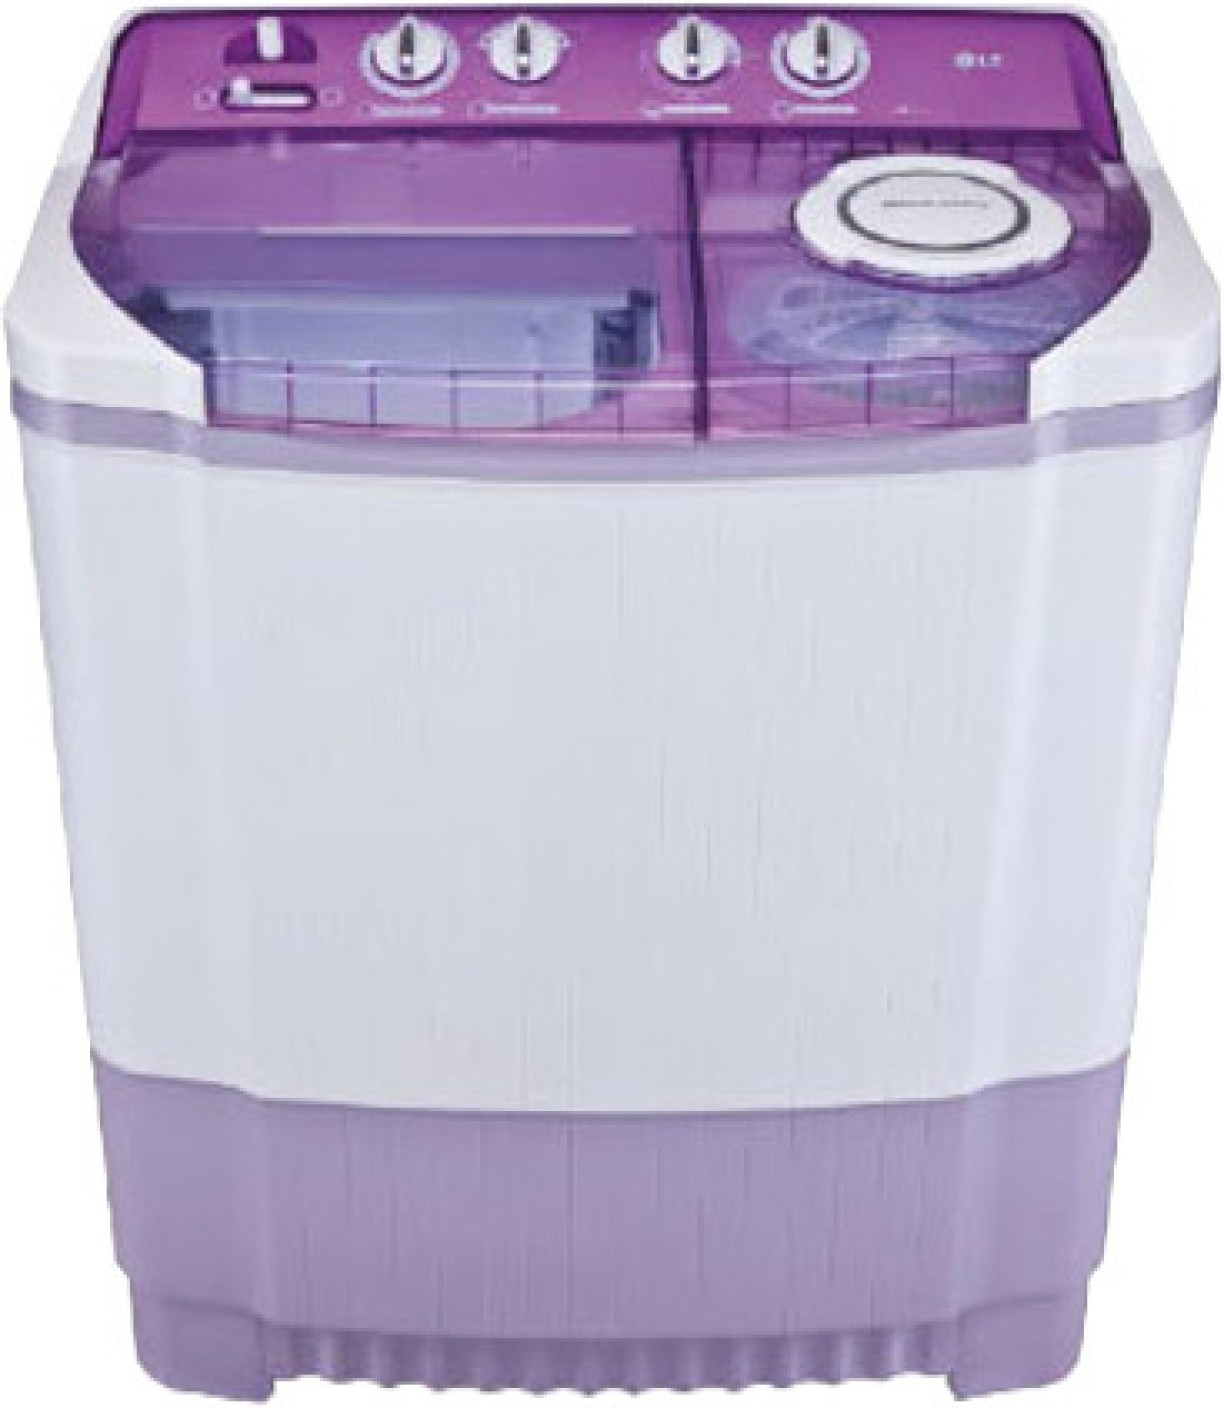 LG 7.2 kg Semi Automatic Top Load Washing Machine Price in ...